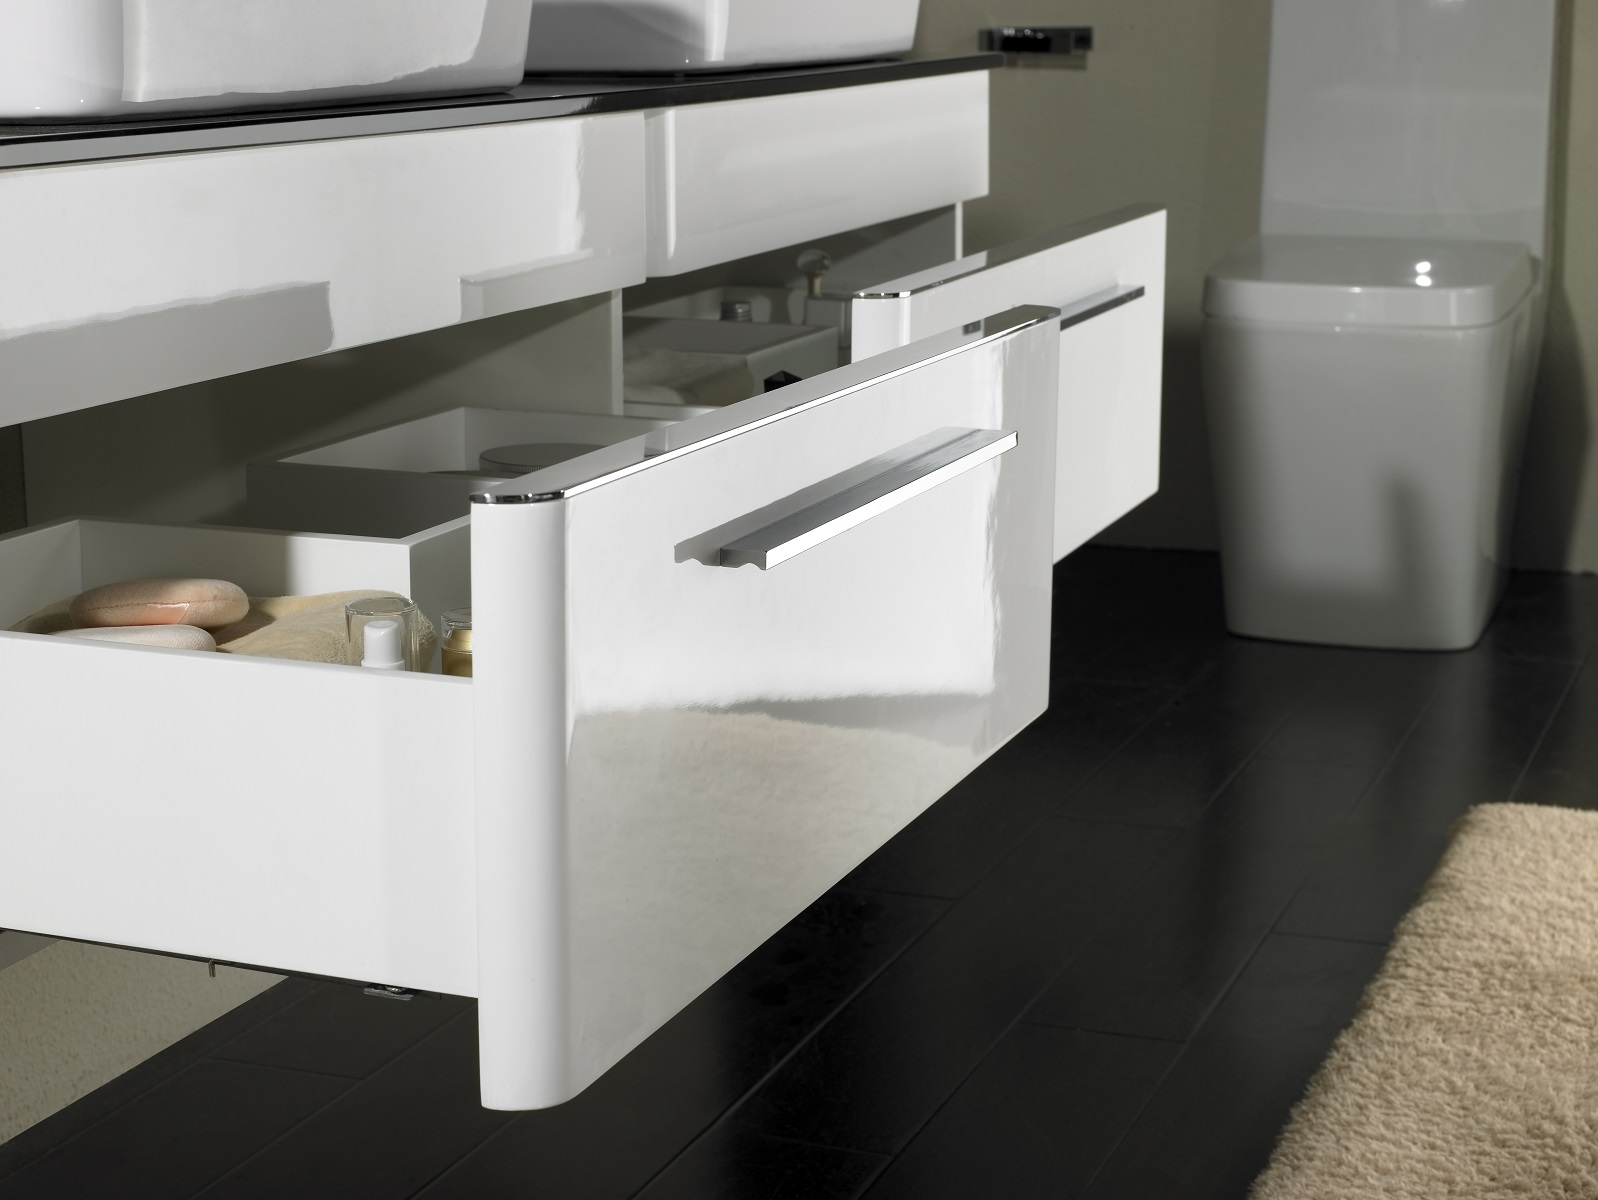 Serinity double sink modern bathroom vanity set 60 in for Modern bathroom sink and vanity